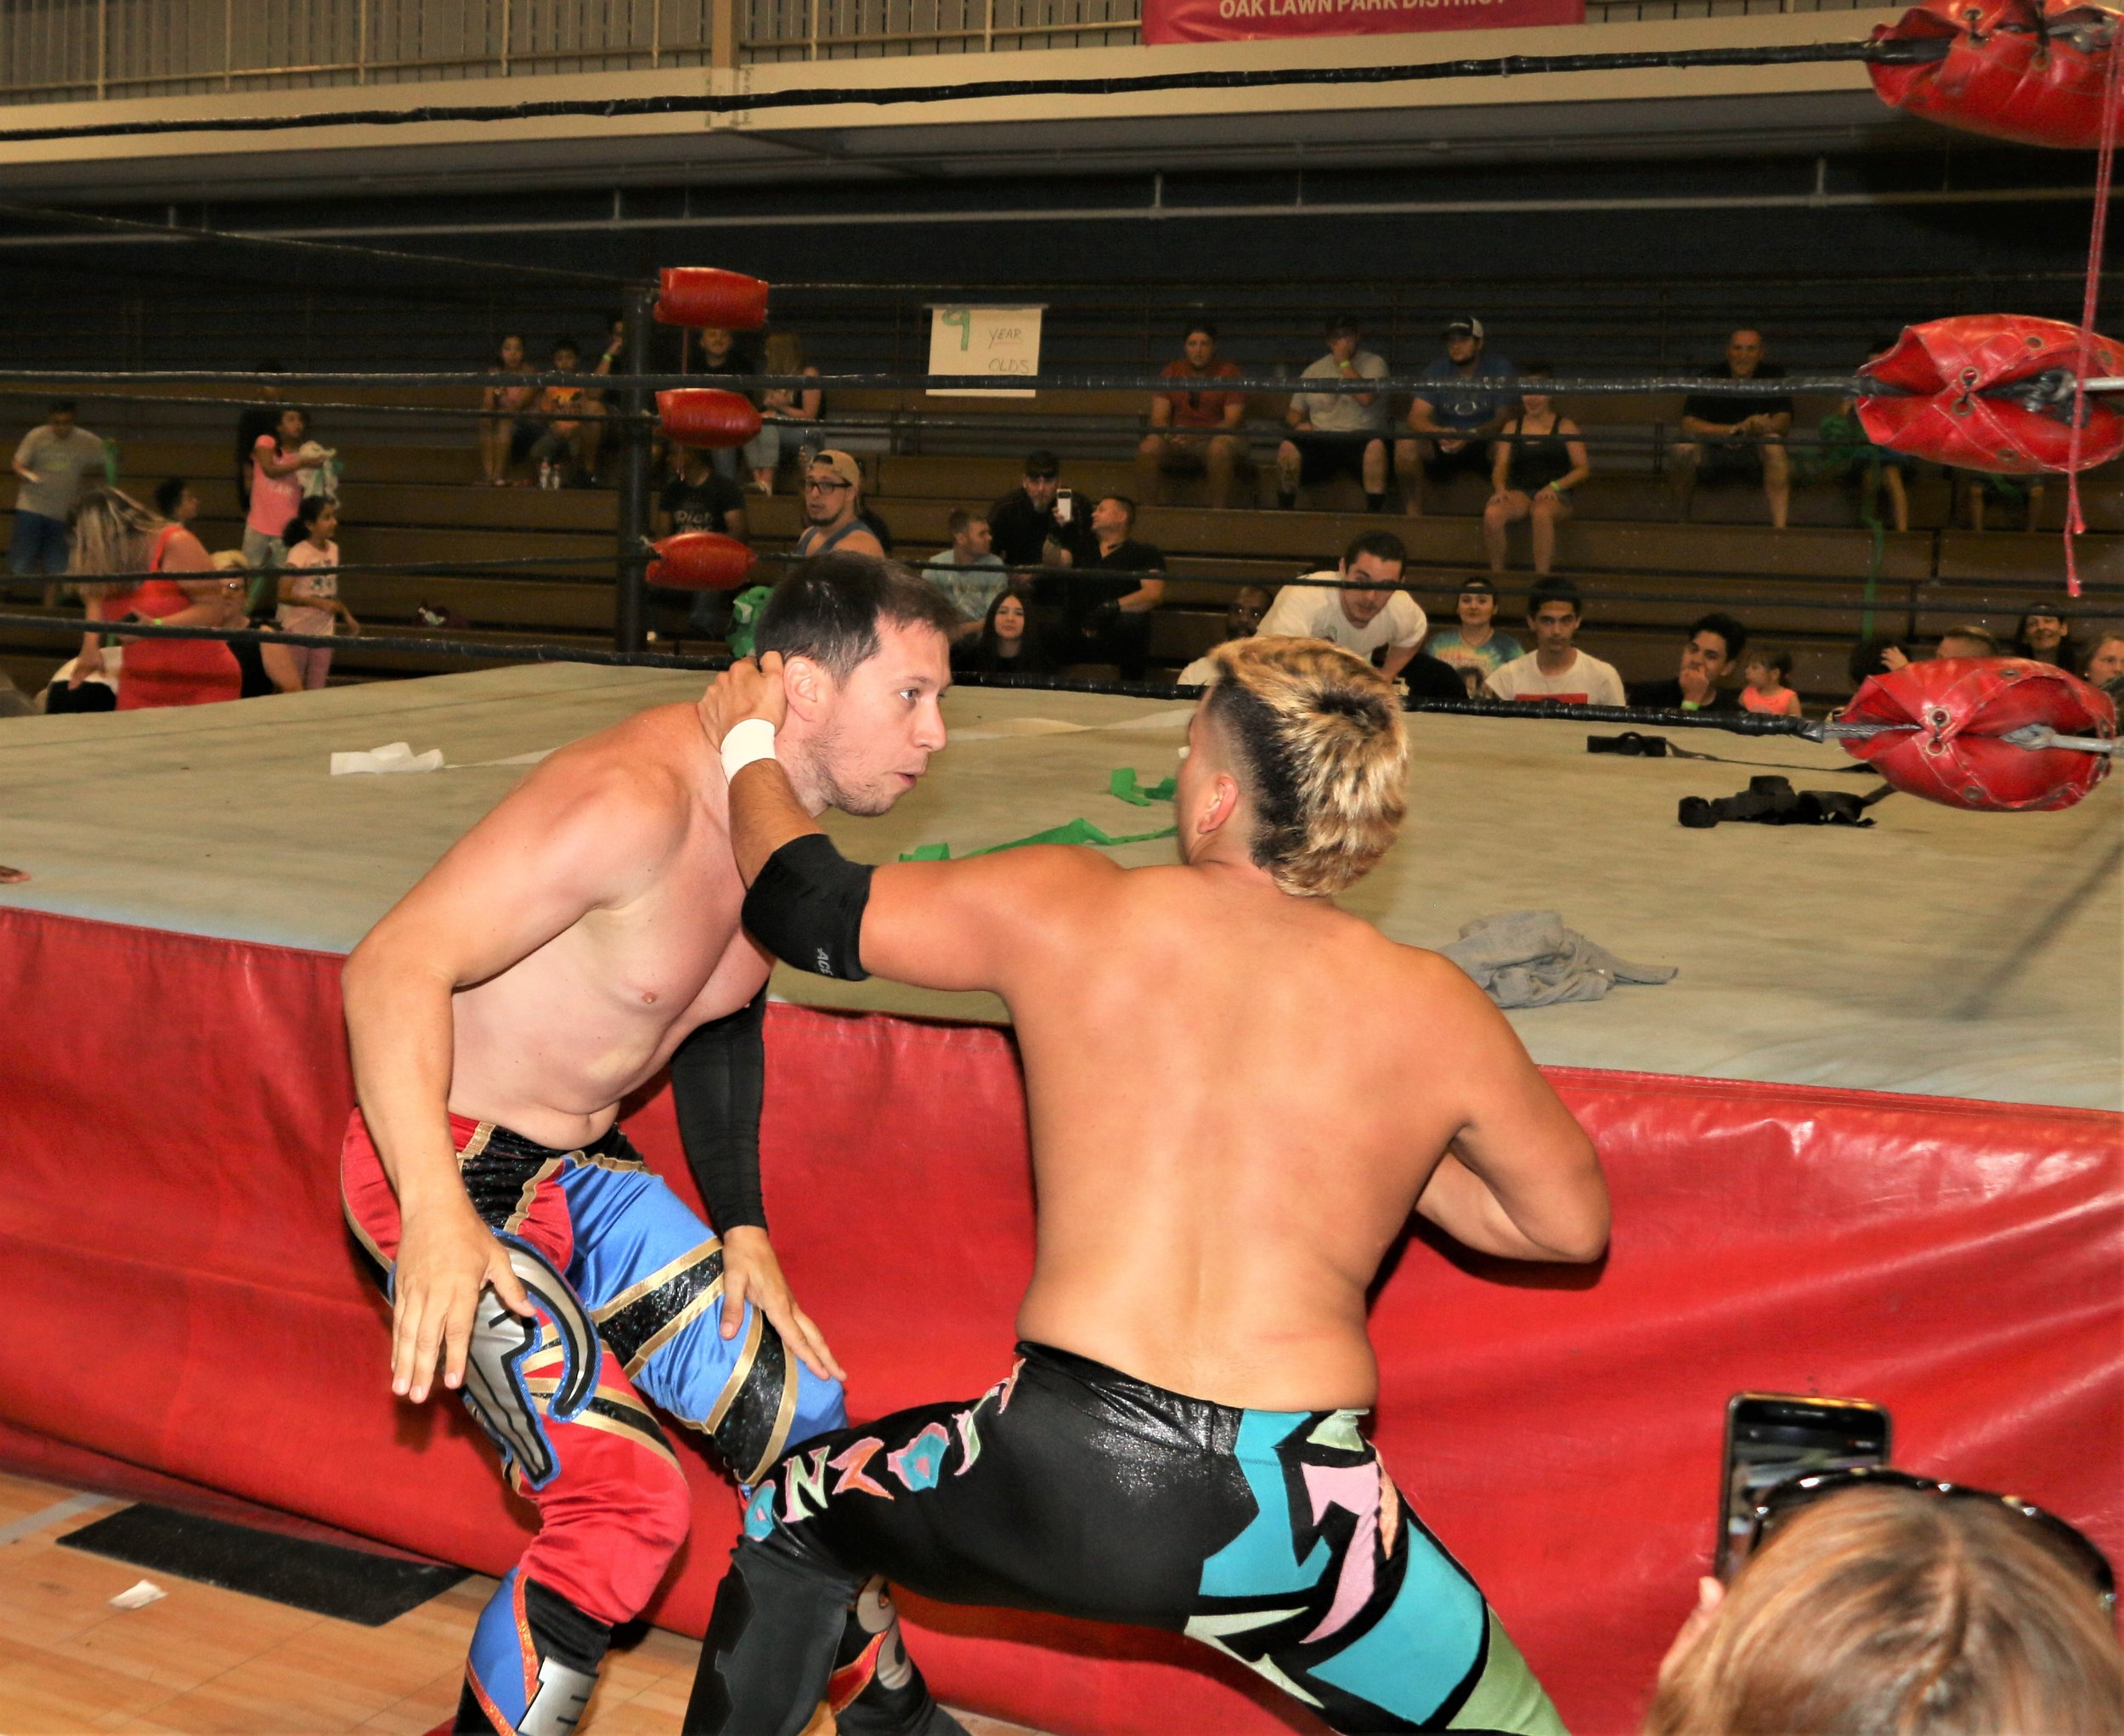 """Robert """"Ego"""" Anthony, left, and Joe Alonzo battle on the outside of the ring."""